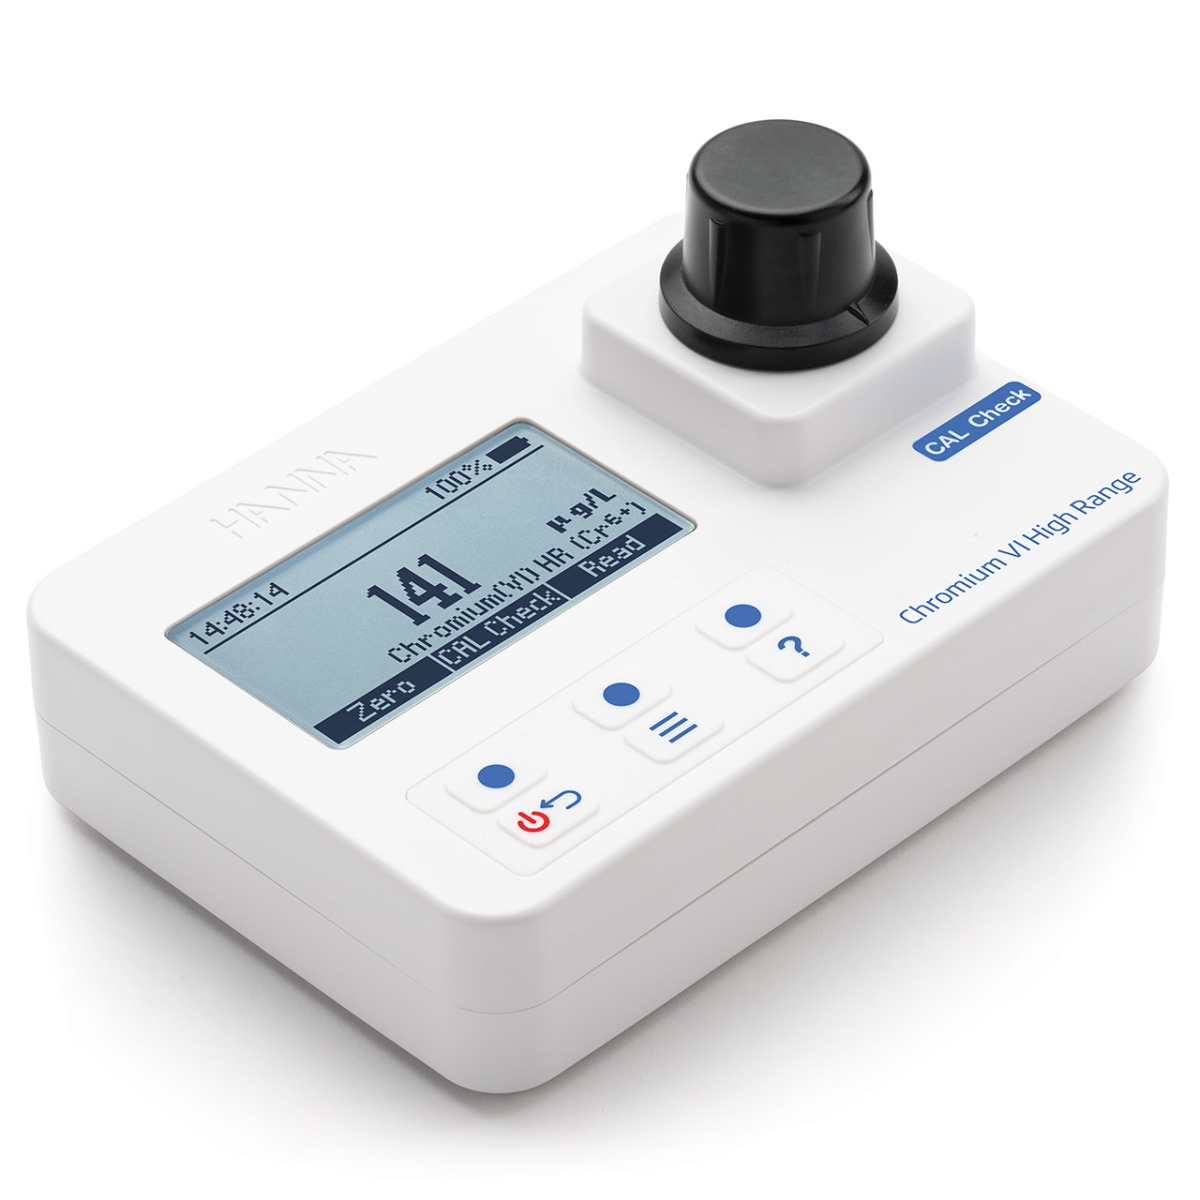 Chromium (VI) Portable Photometer with CAL Check – HI97723